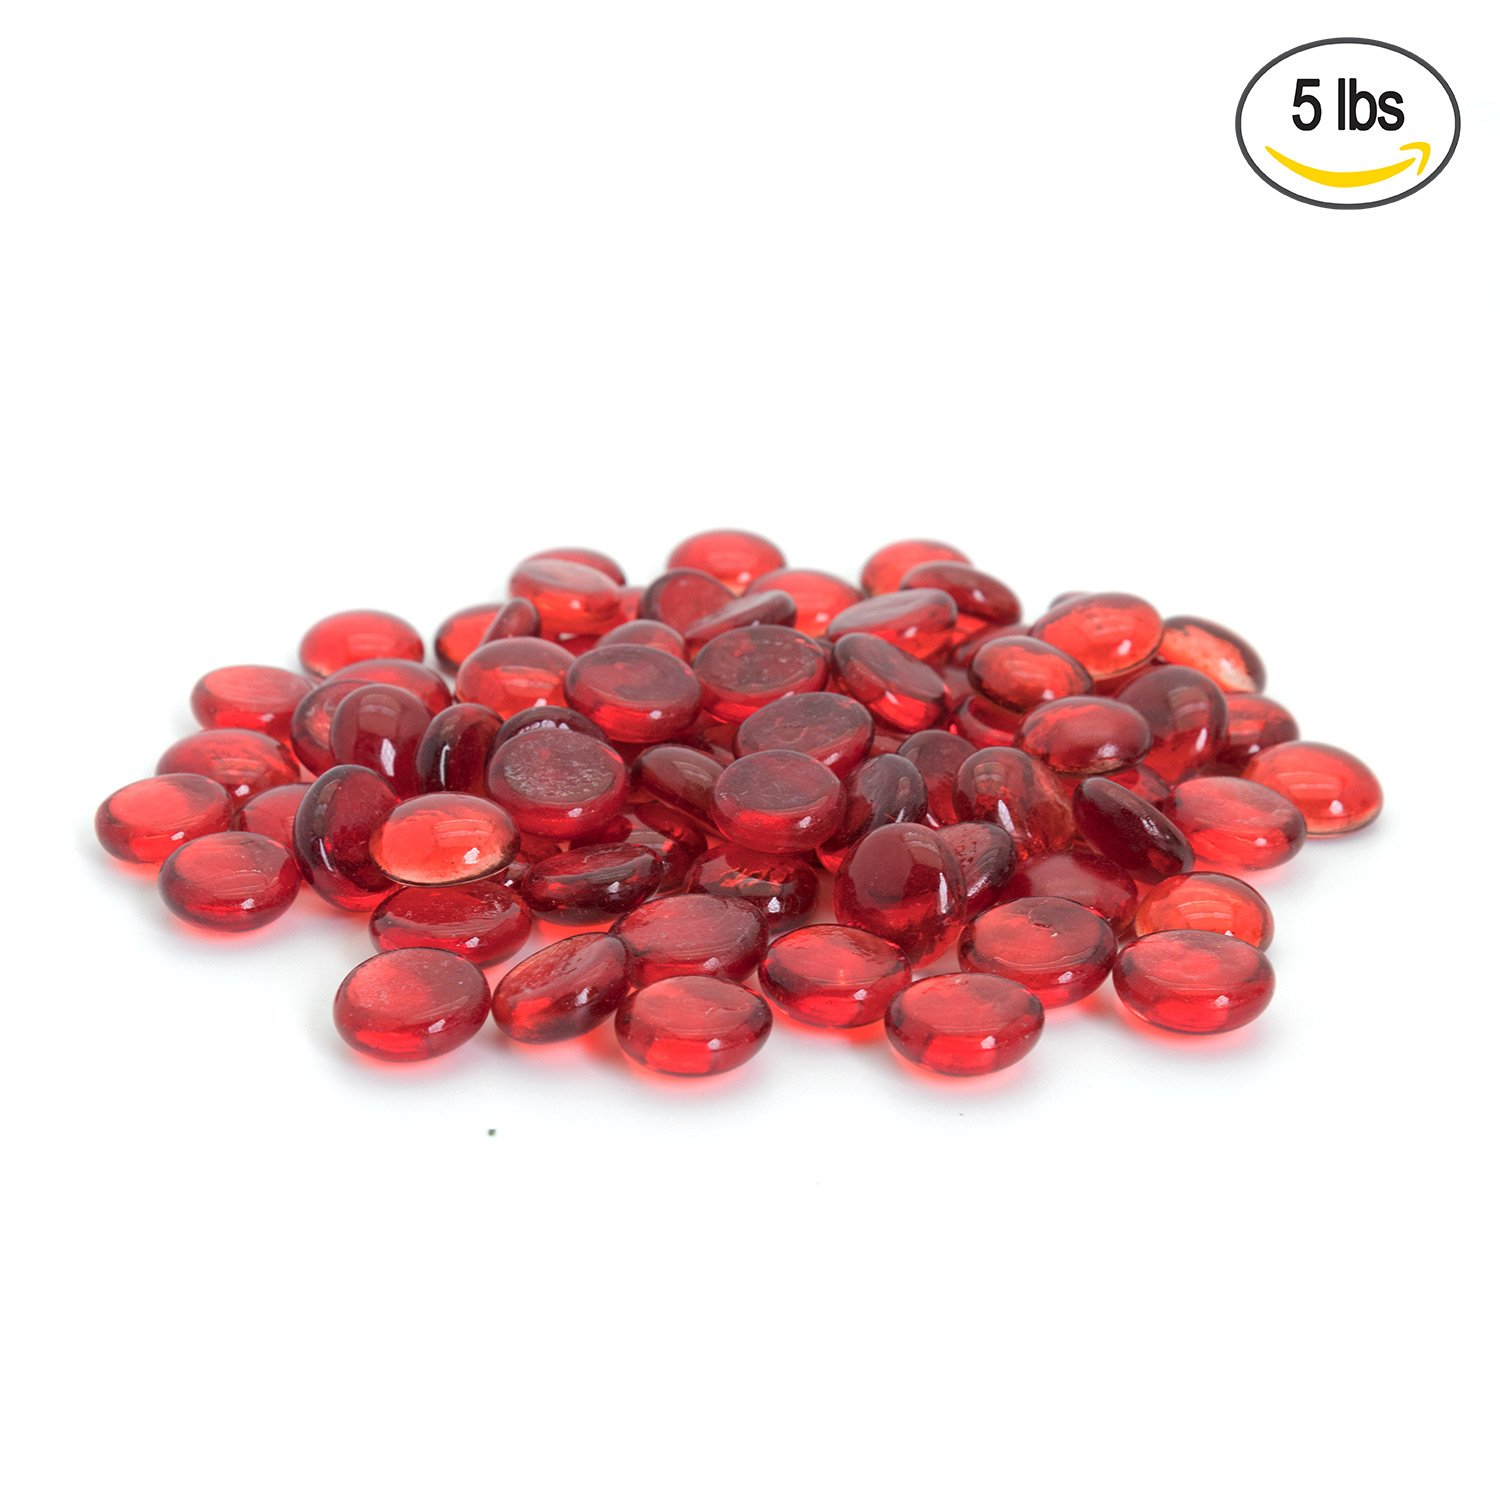 Amazon flat clear marbles pebbles 5 pound bag for vase red flat marbles pebbles glass gems for vase fillers party table scatter reviewsmspy